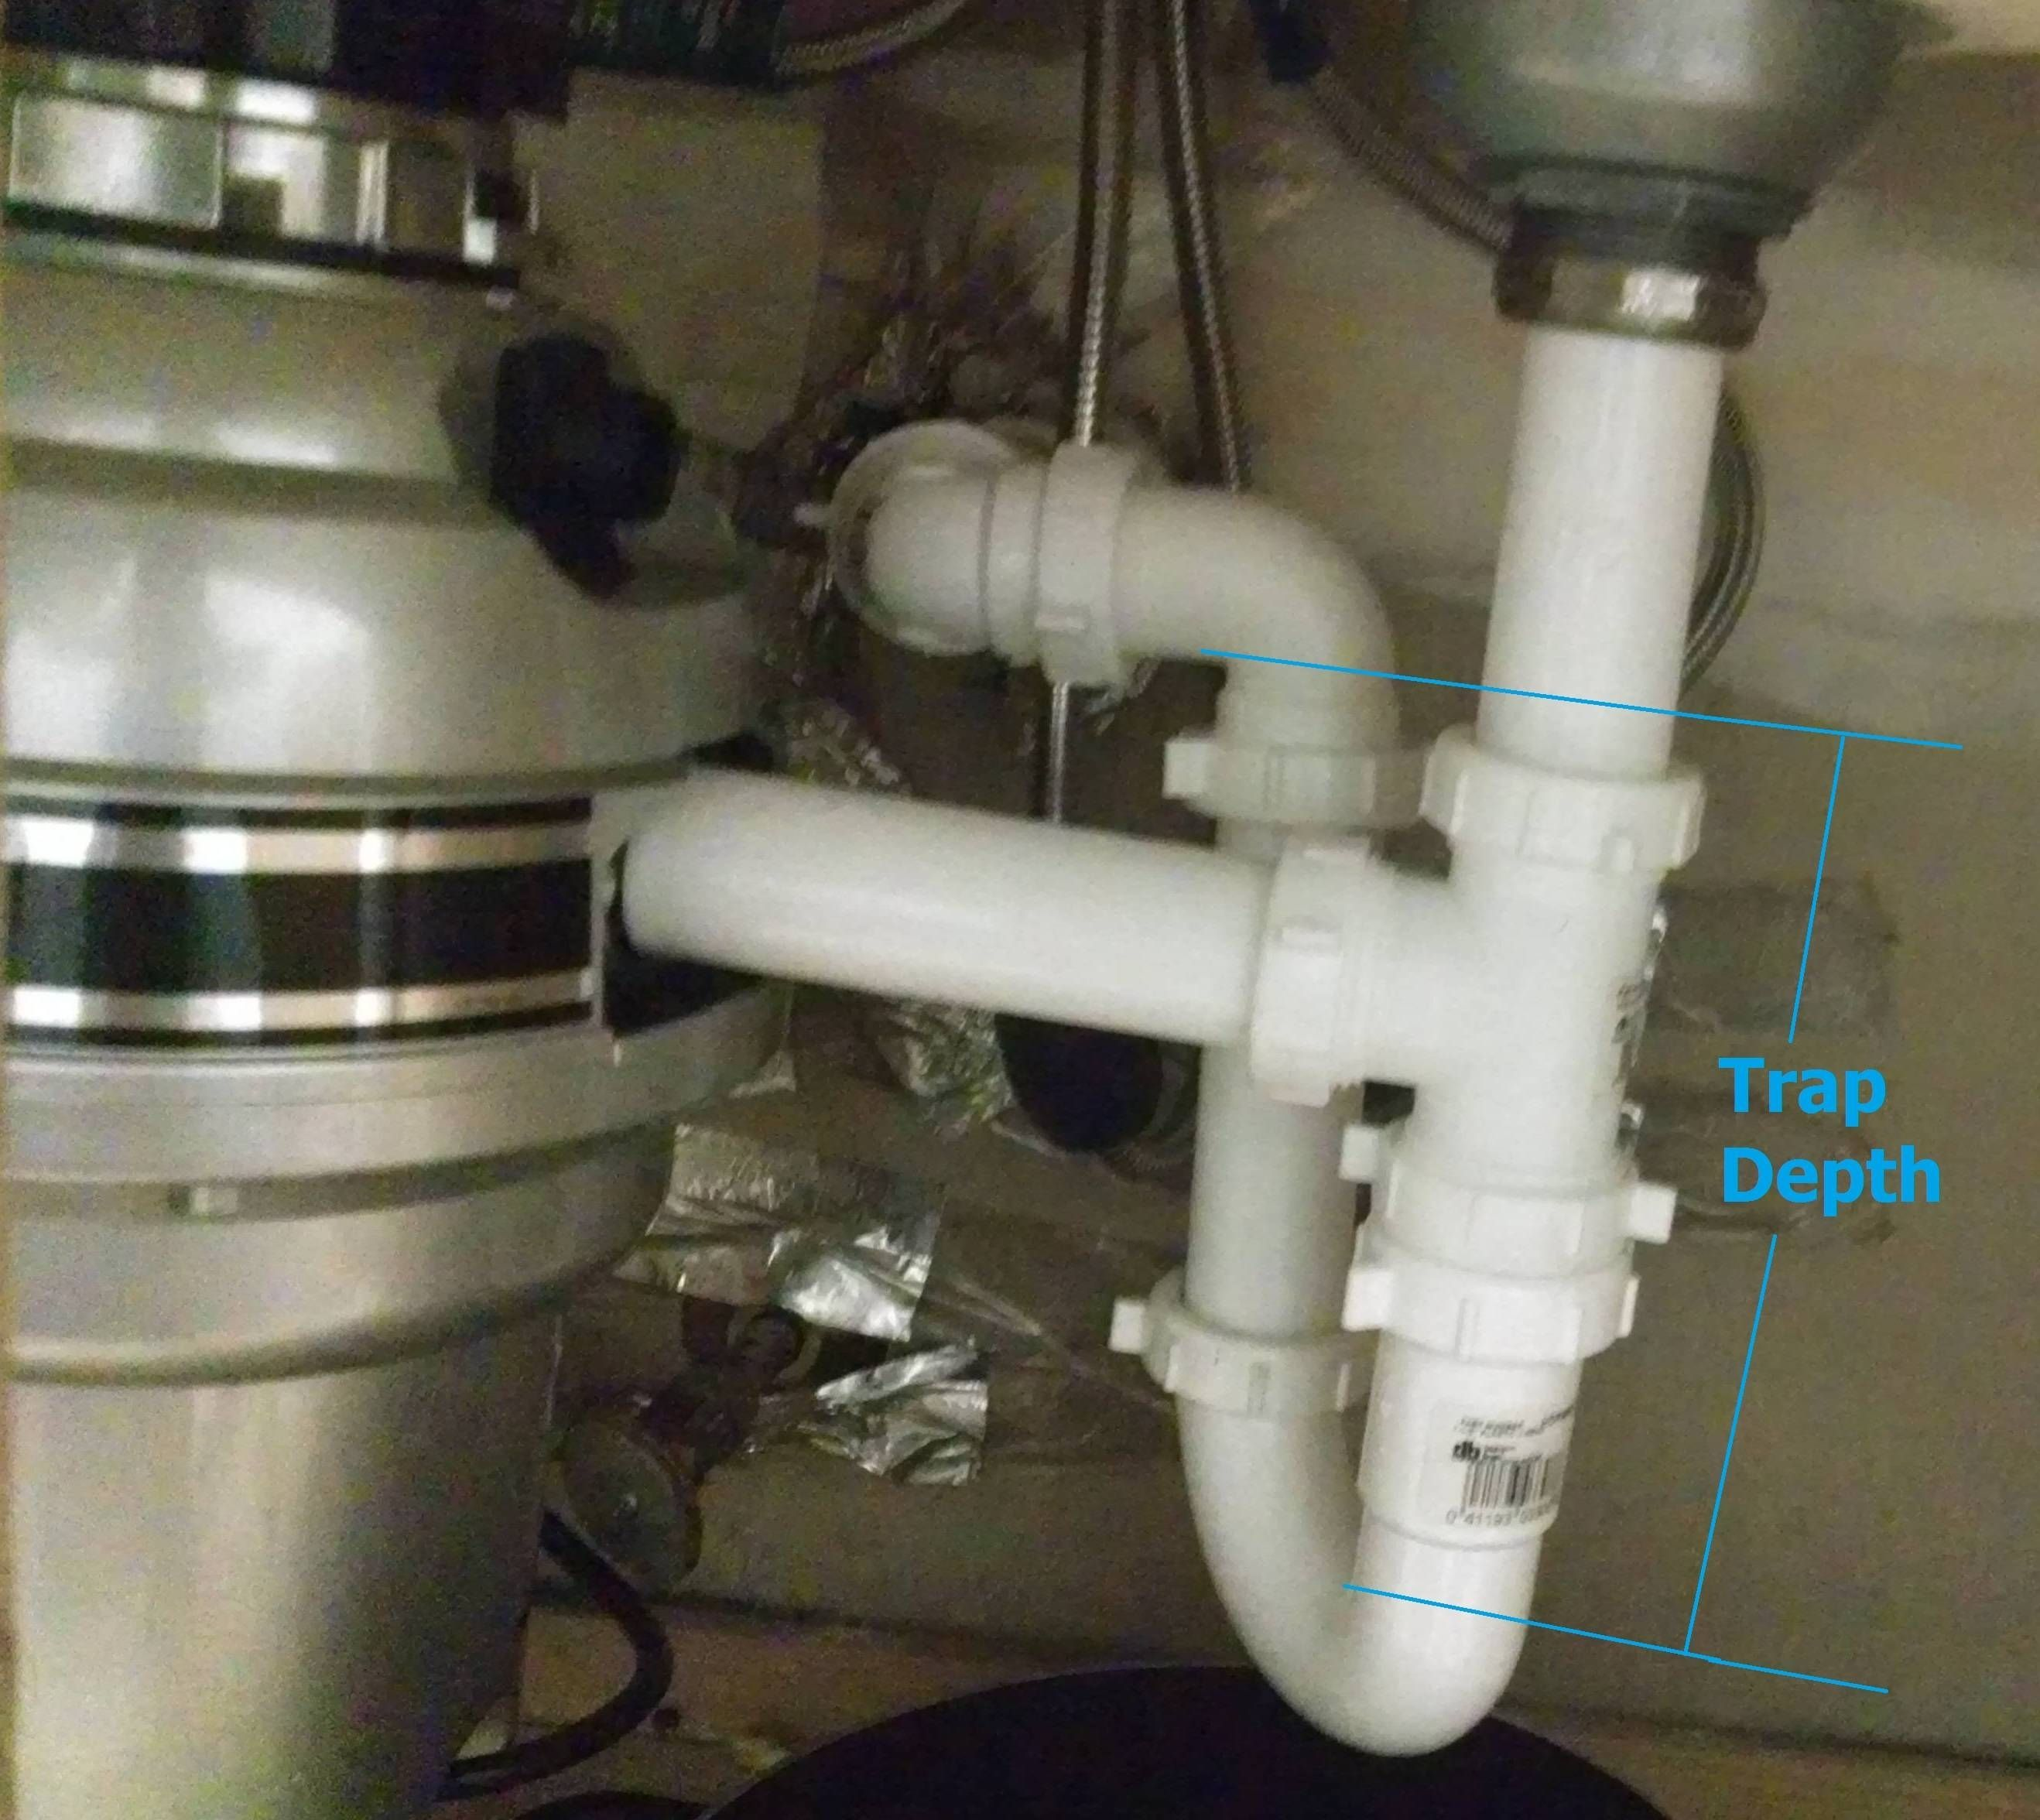 Kitchen Sink Drain Pipe Too High Kitchen